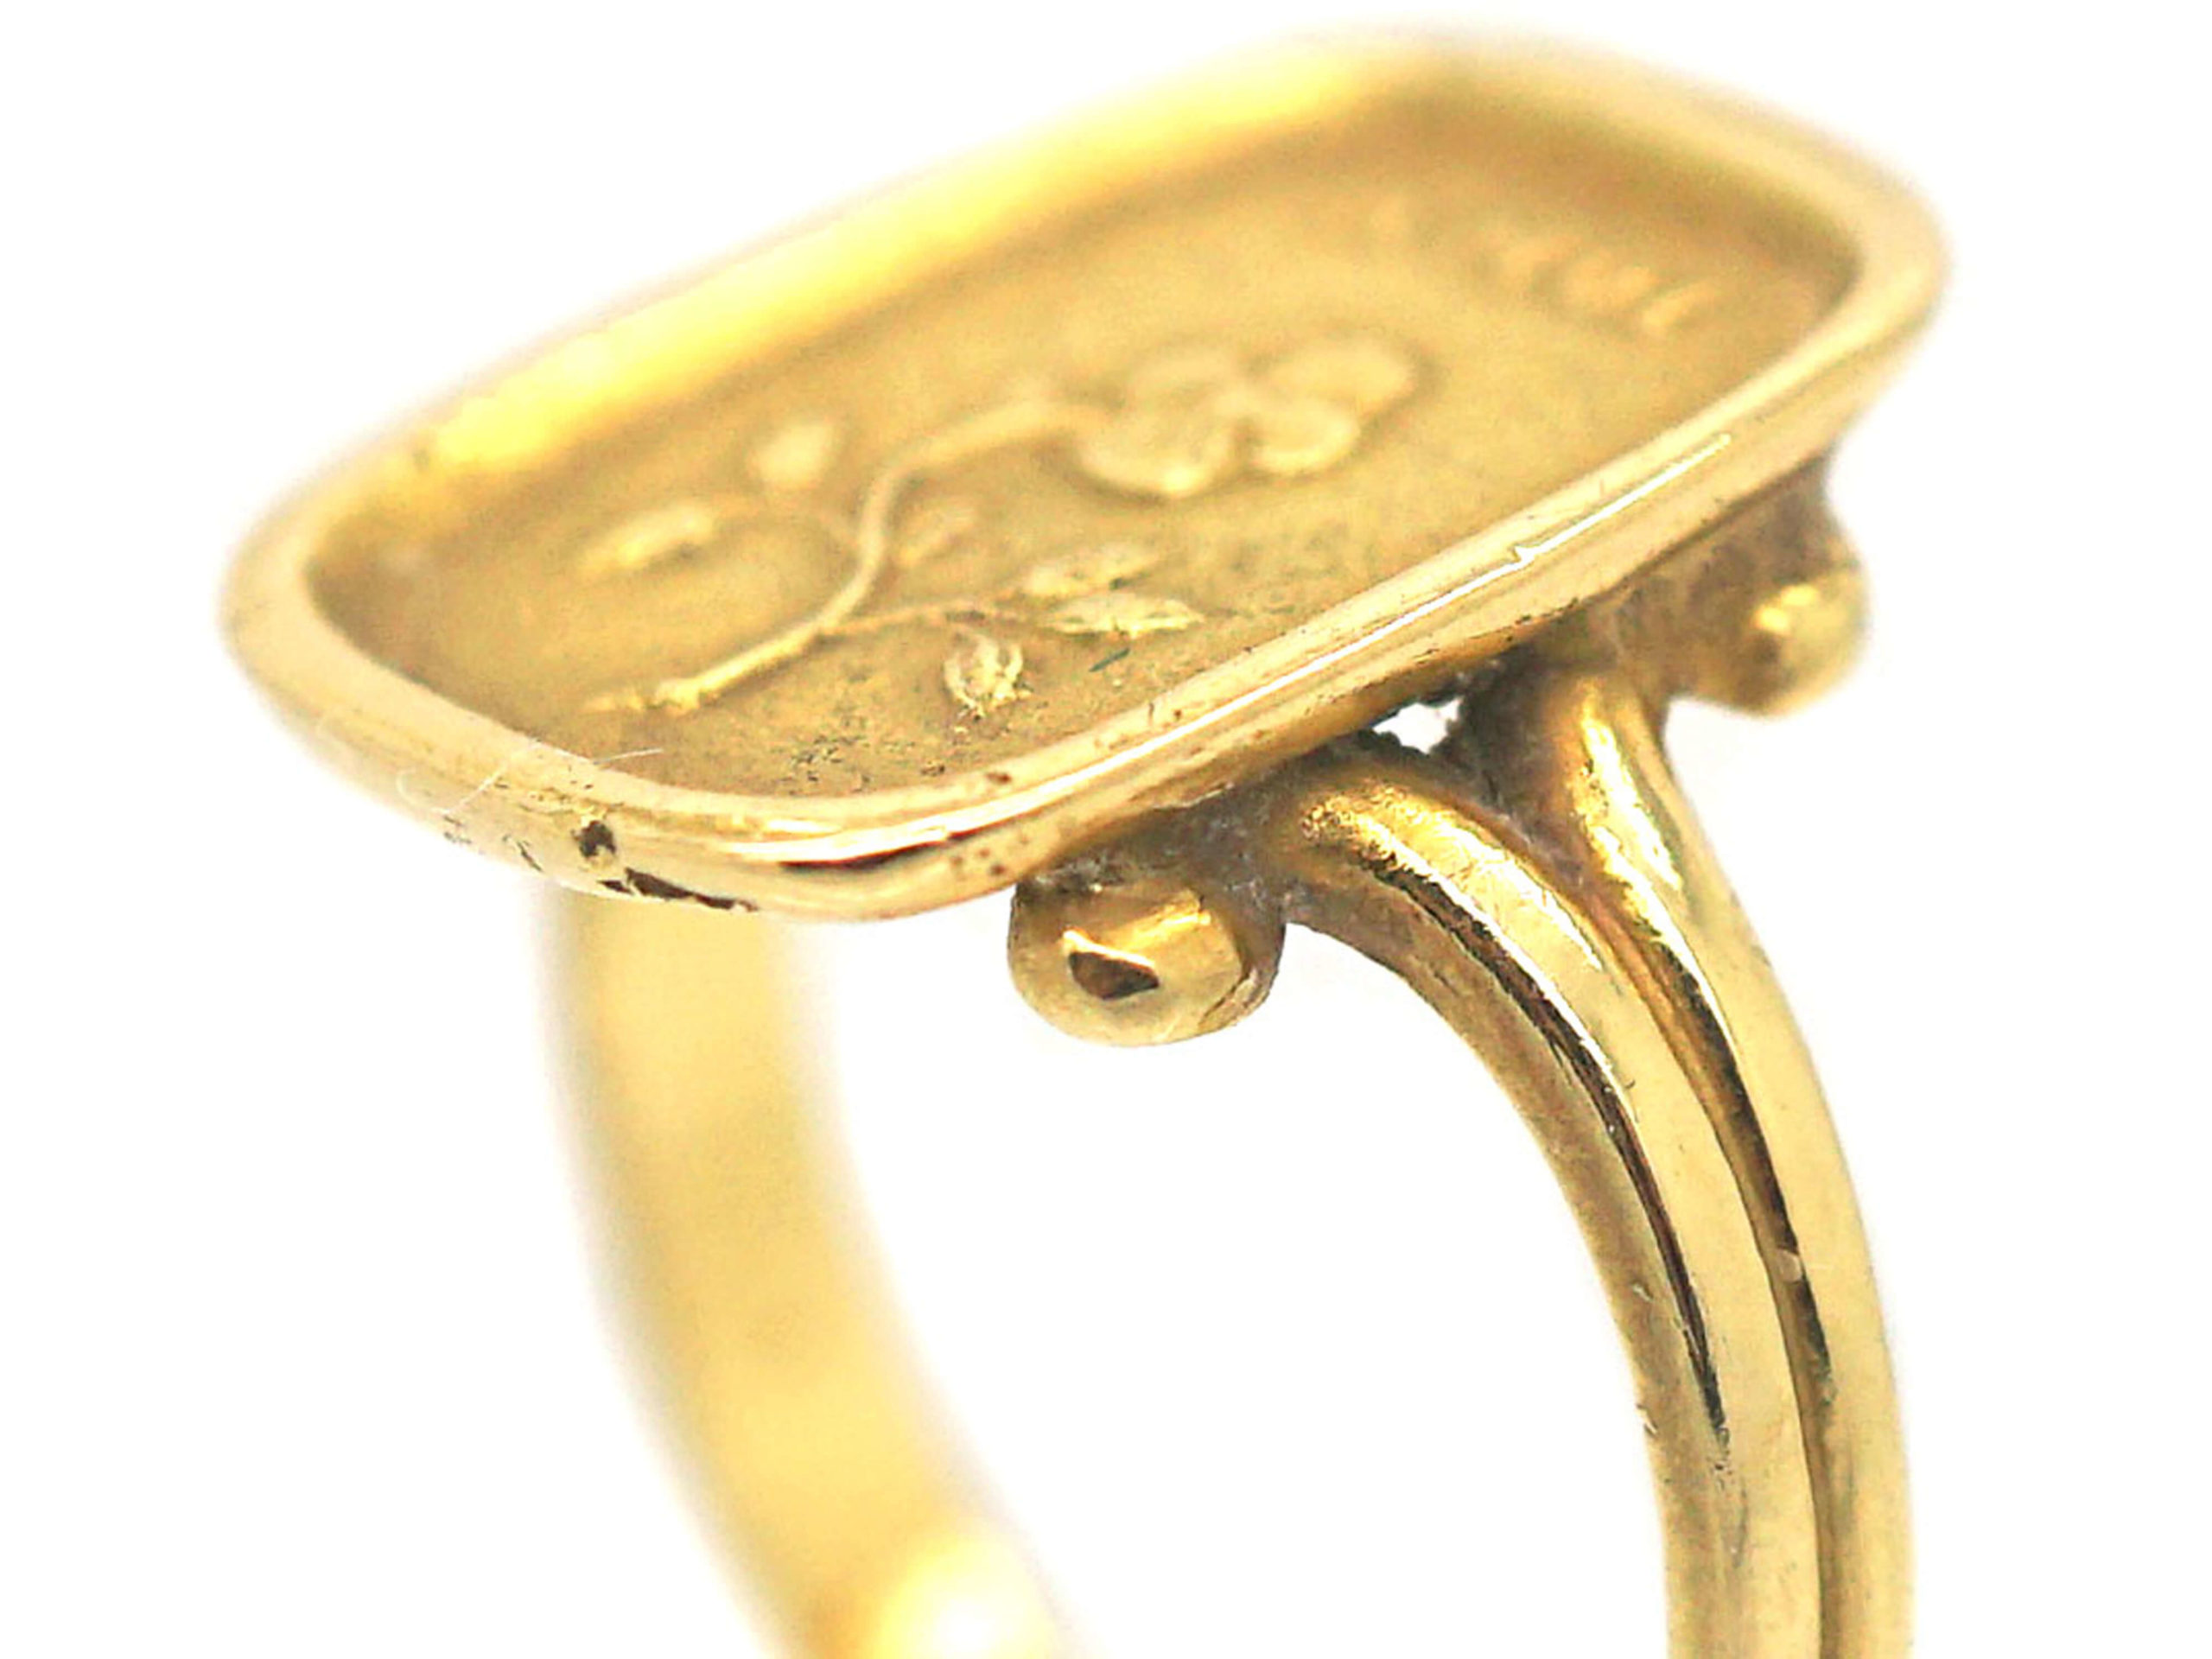 Victorian 18ct Gold Ring with Pense a Moi Motif